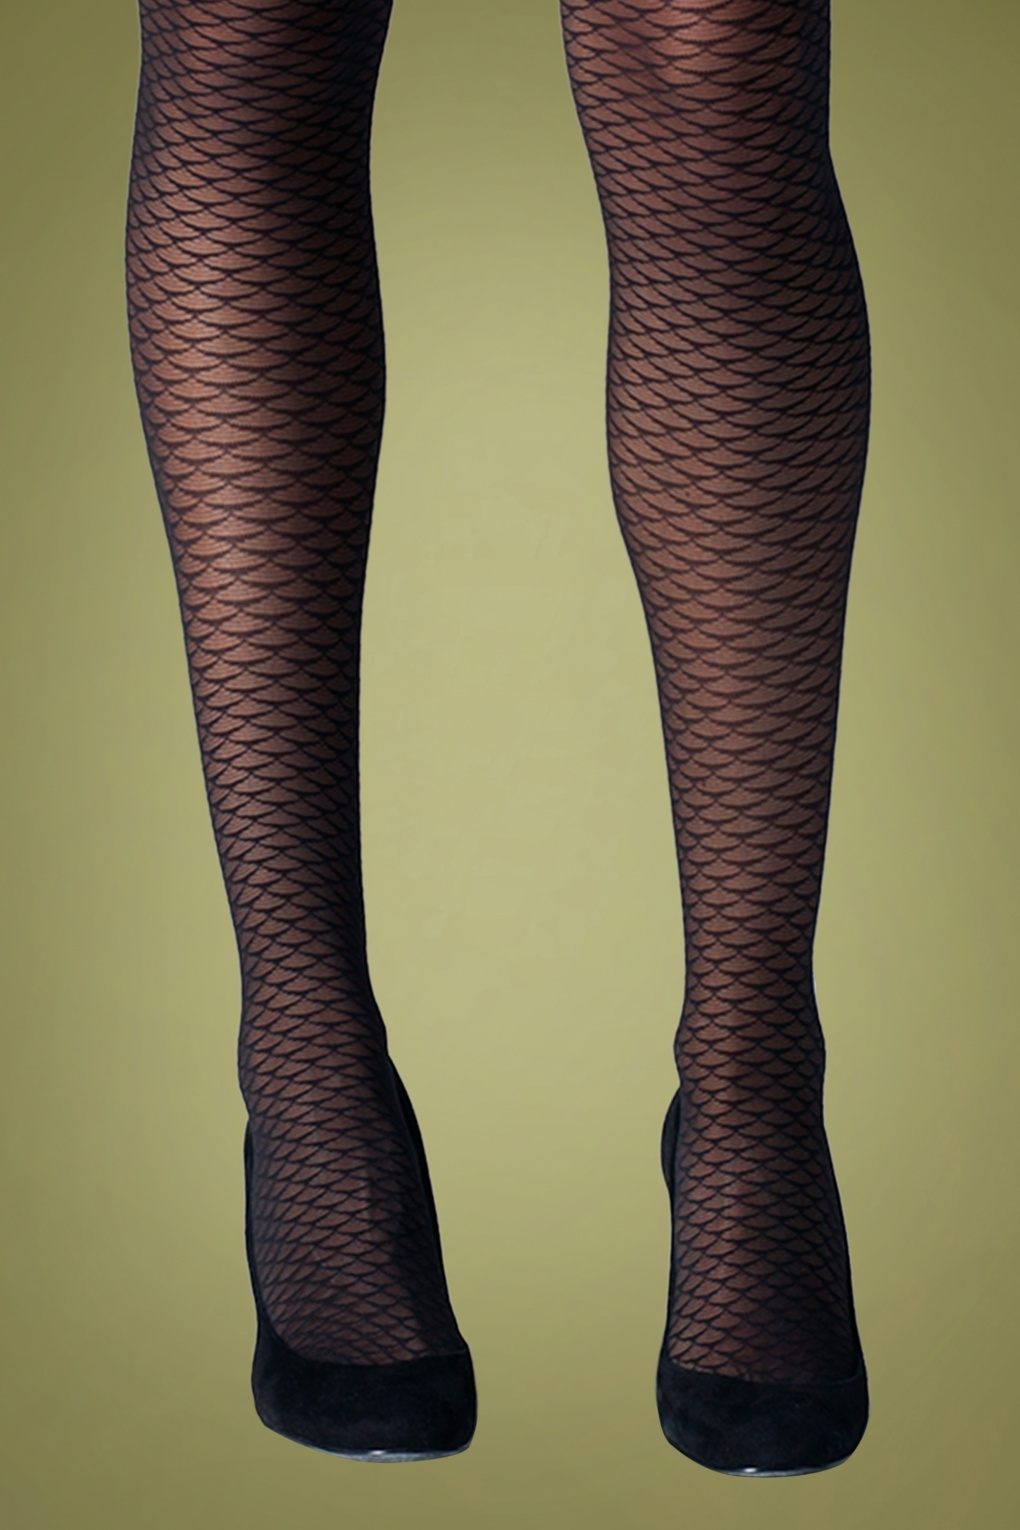 1960s Tights, Stockings, Panty Hose, Knee High Socks 60s Mermaid Tights in Black £9.01 AT vintagedancer.com